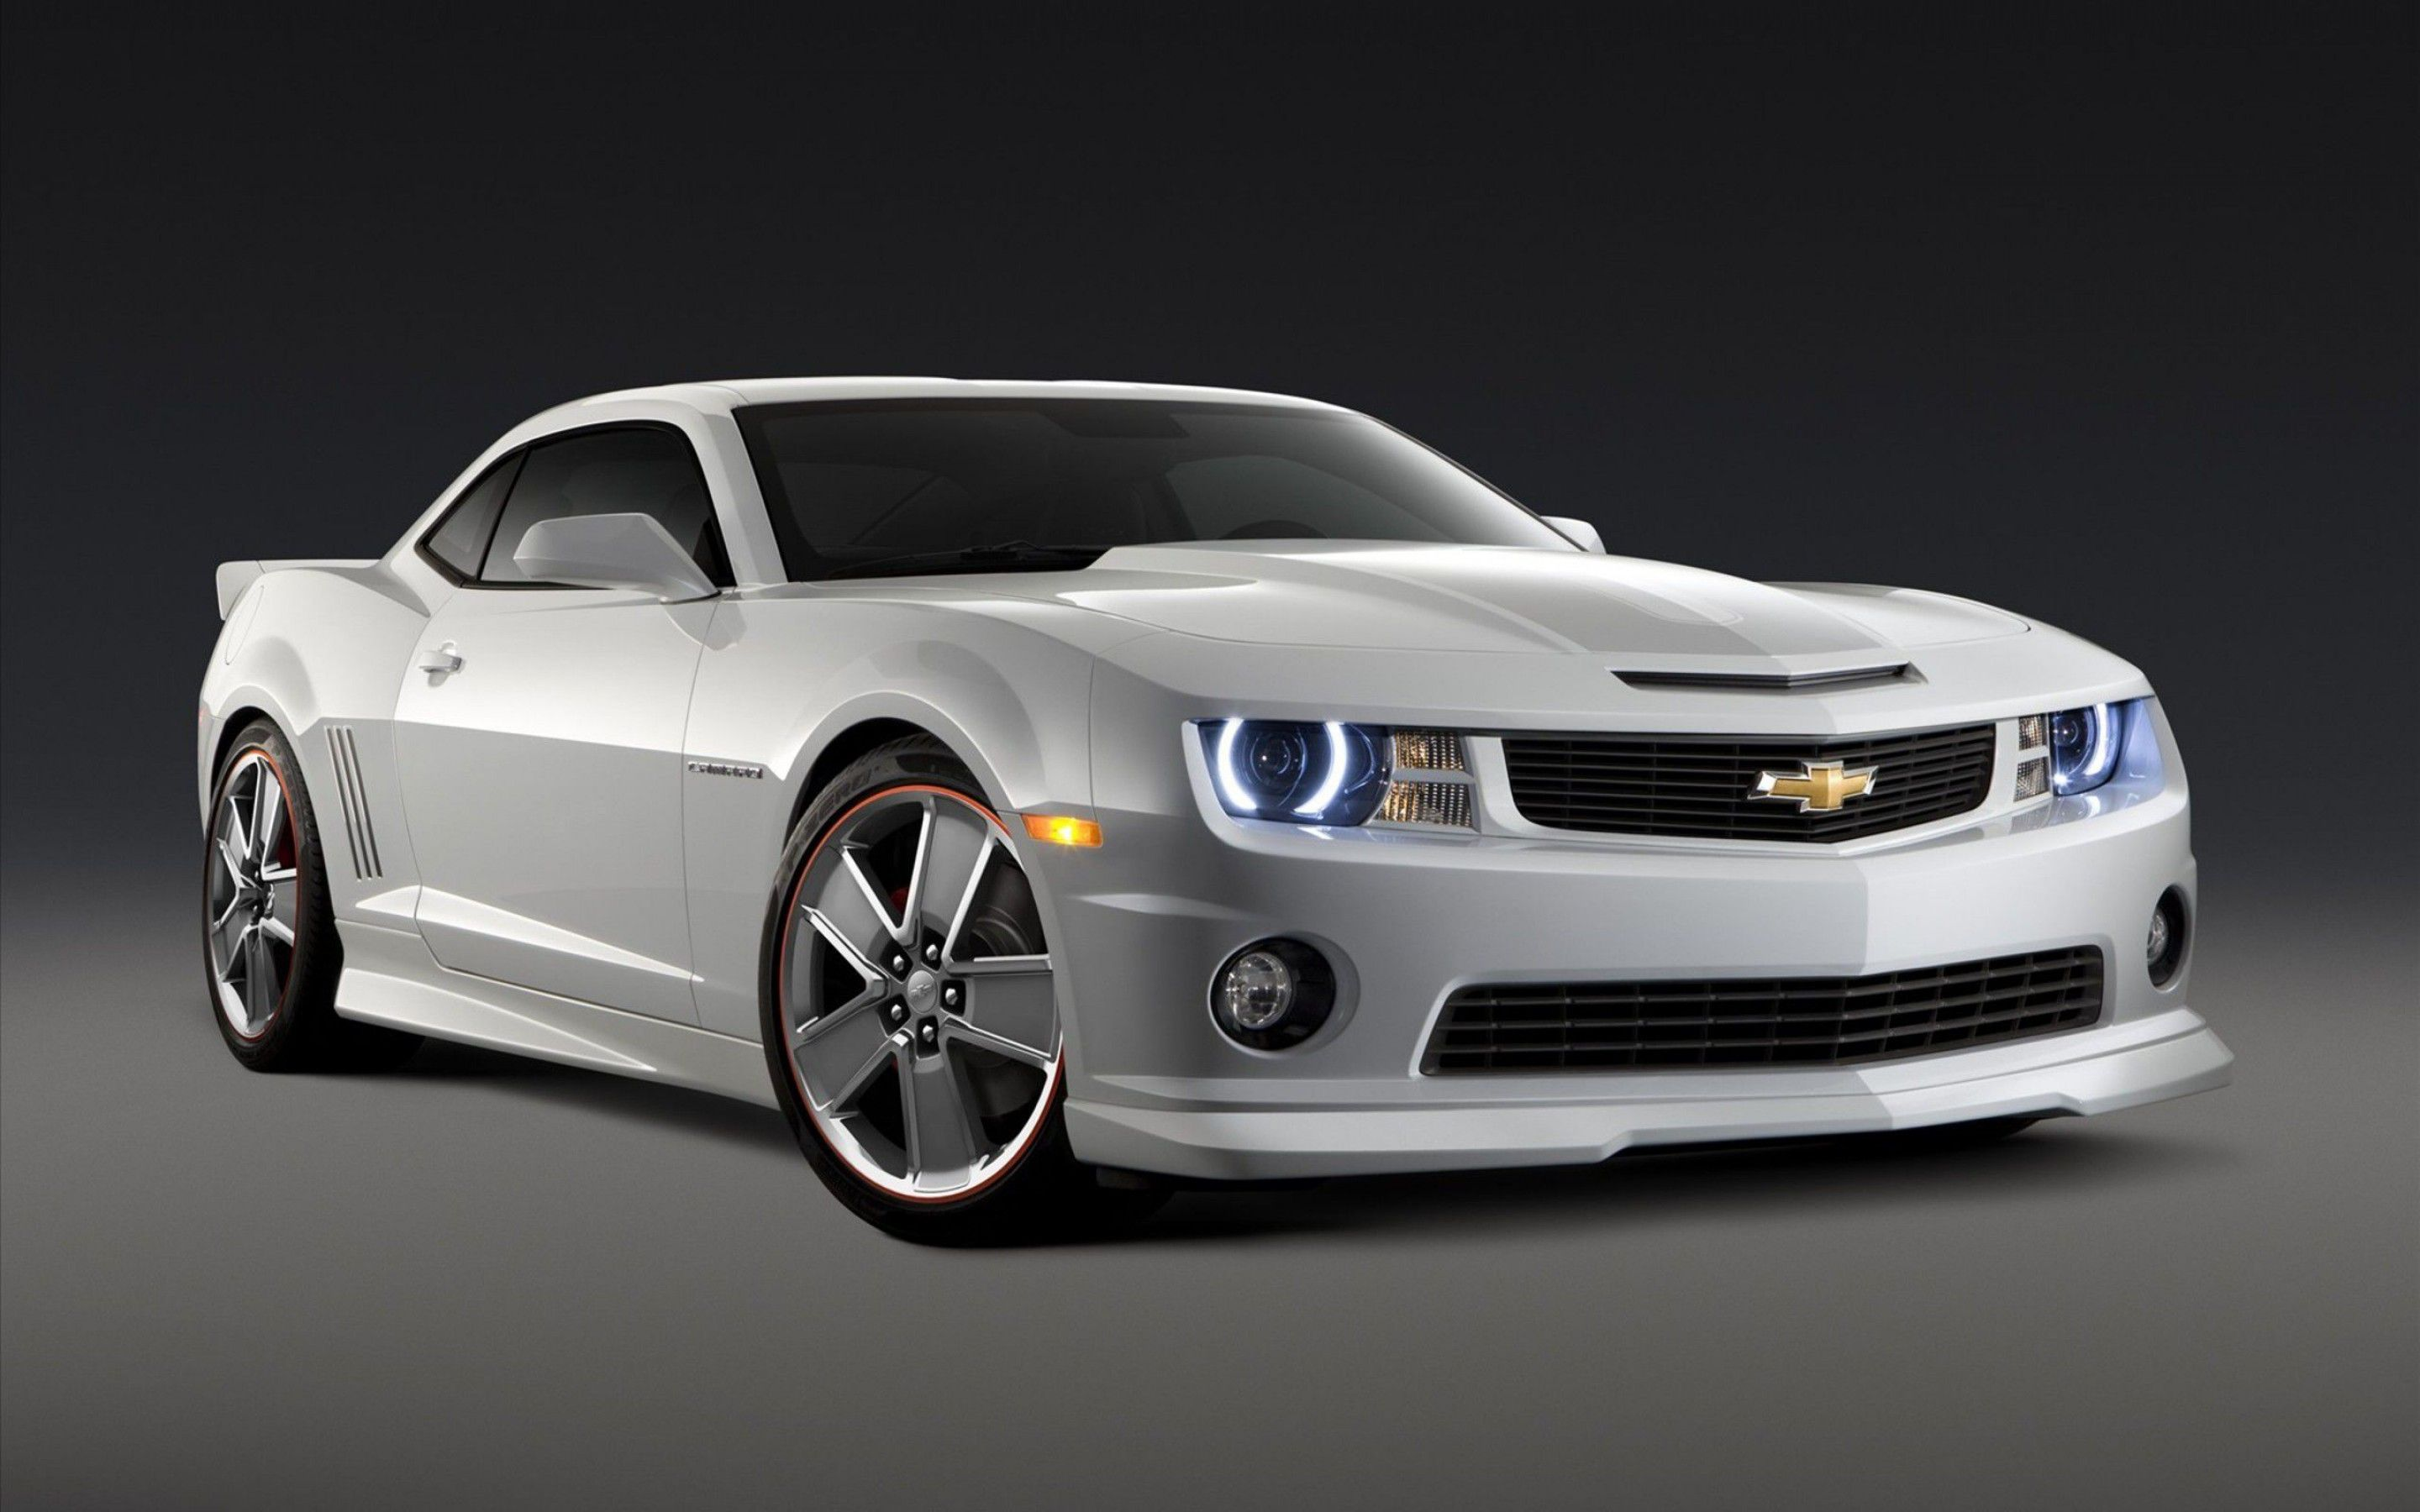 White Chevrolet Camaro Sport Car Wallpaper High Quality For Desktop Mobile  #482009283 Wallpaper